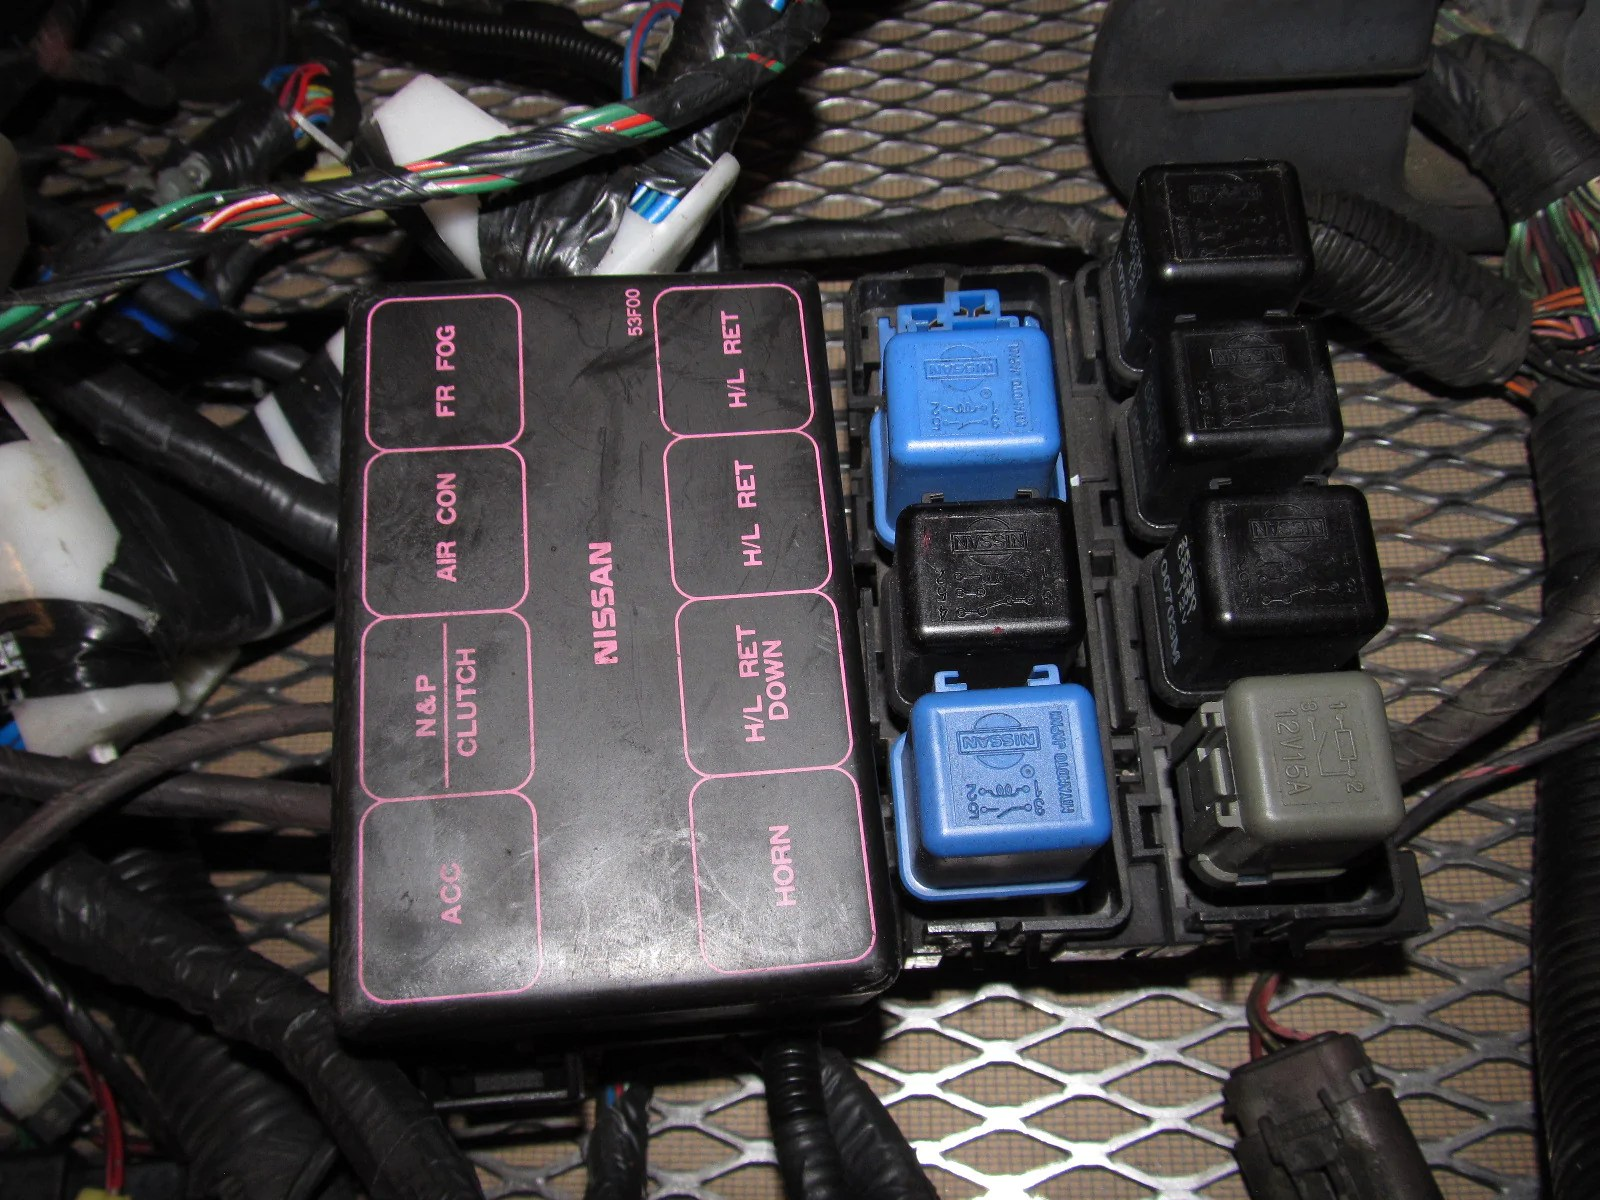 hight resolution of 1996 nissan 240sx fuse box wiring diagram namenissan 240sx fuse box wiring diagram name 1996 nissan